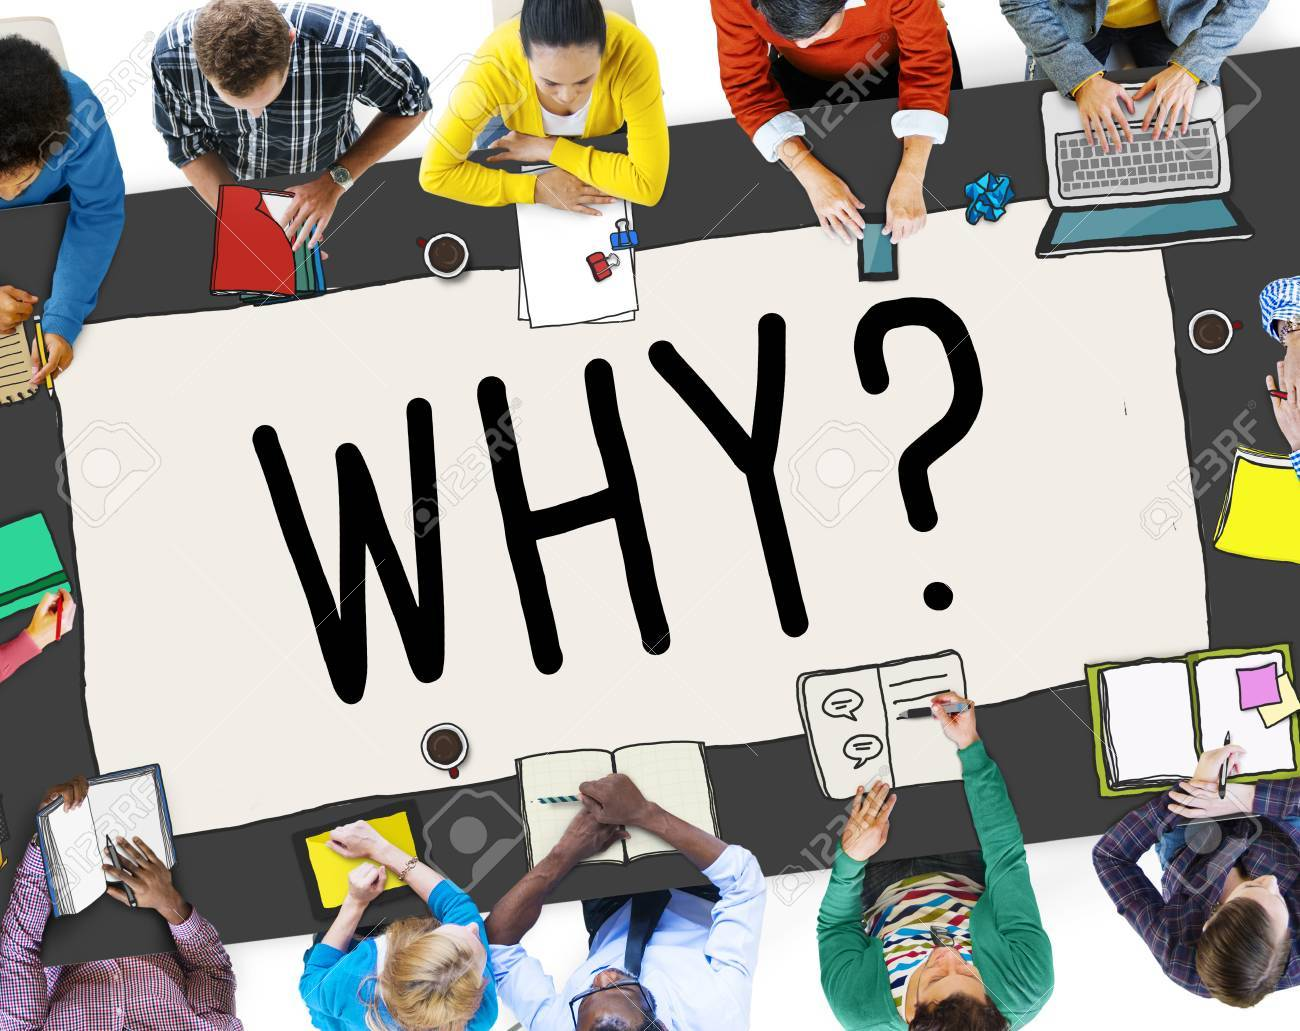 Why Question Reason Curious Confuse Concept - 46312230